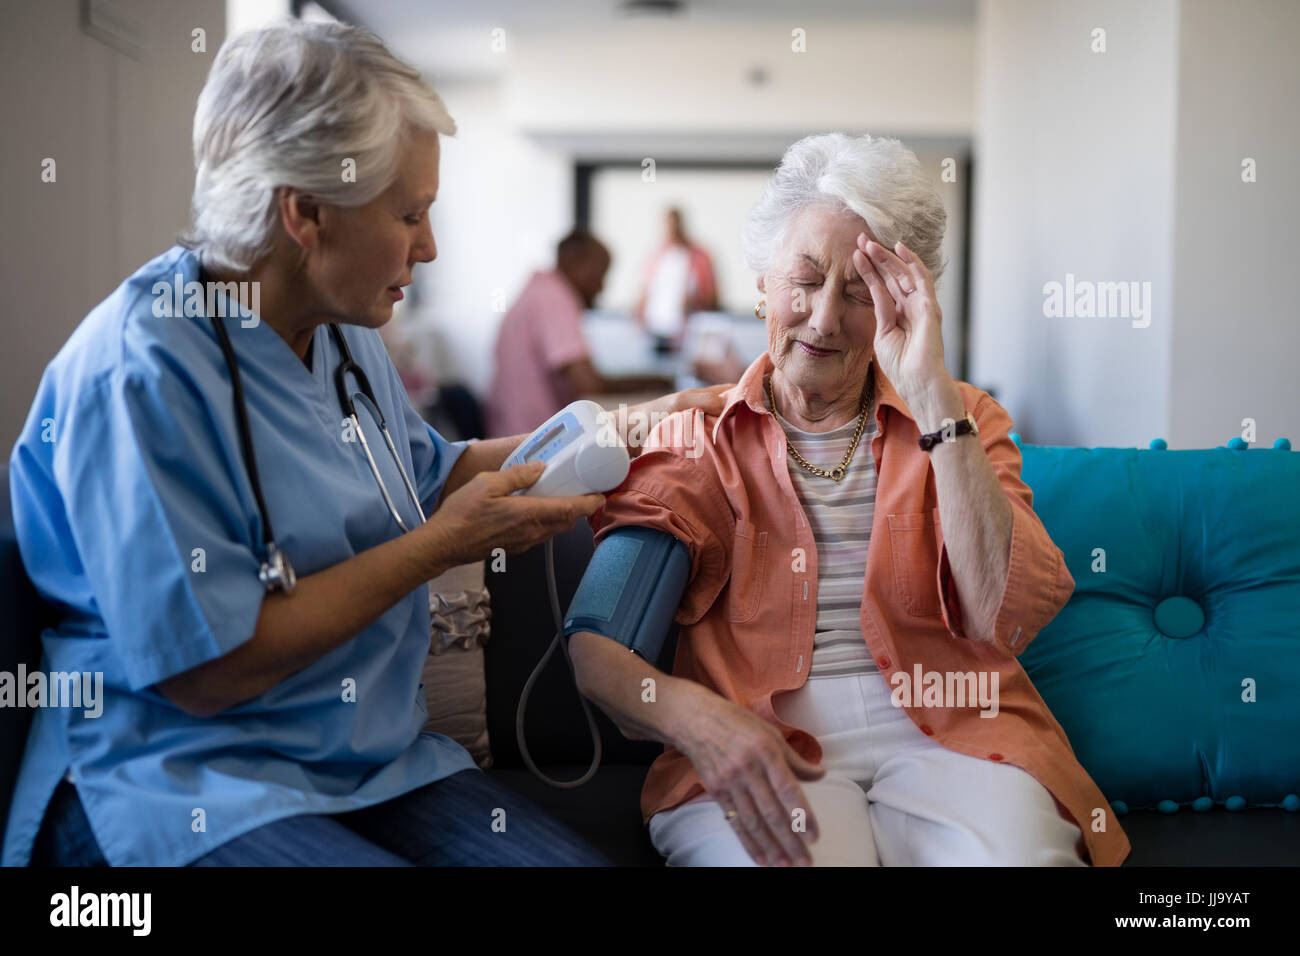 Senior woman complaining about headache to doctor during blood pressure check up at nursing home - Stock Image